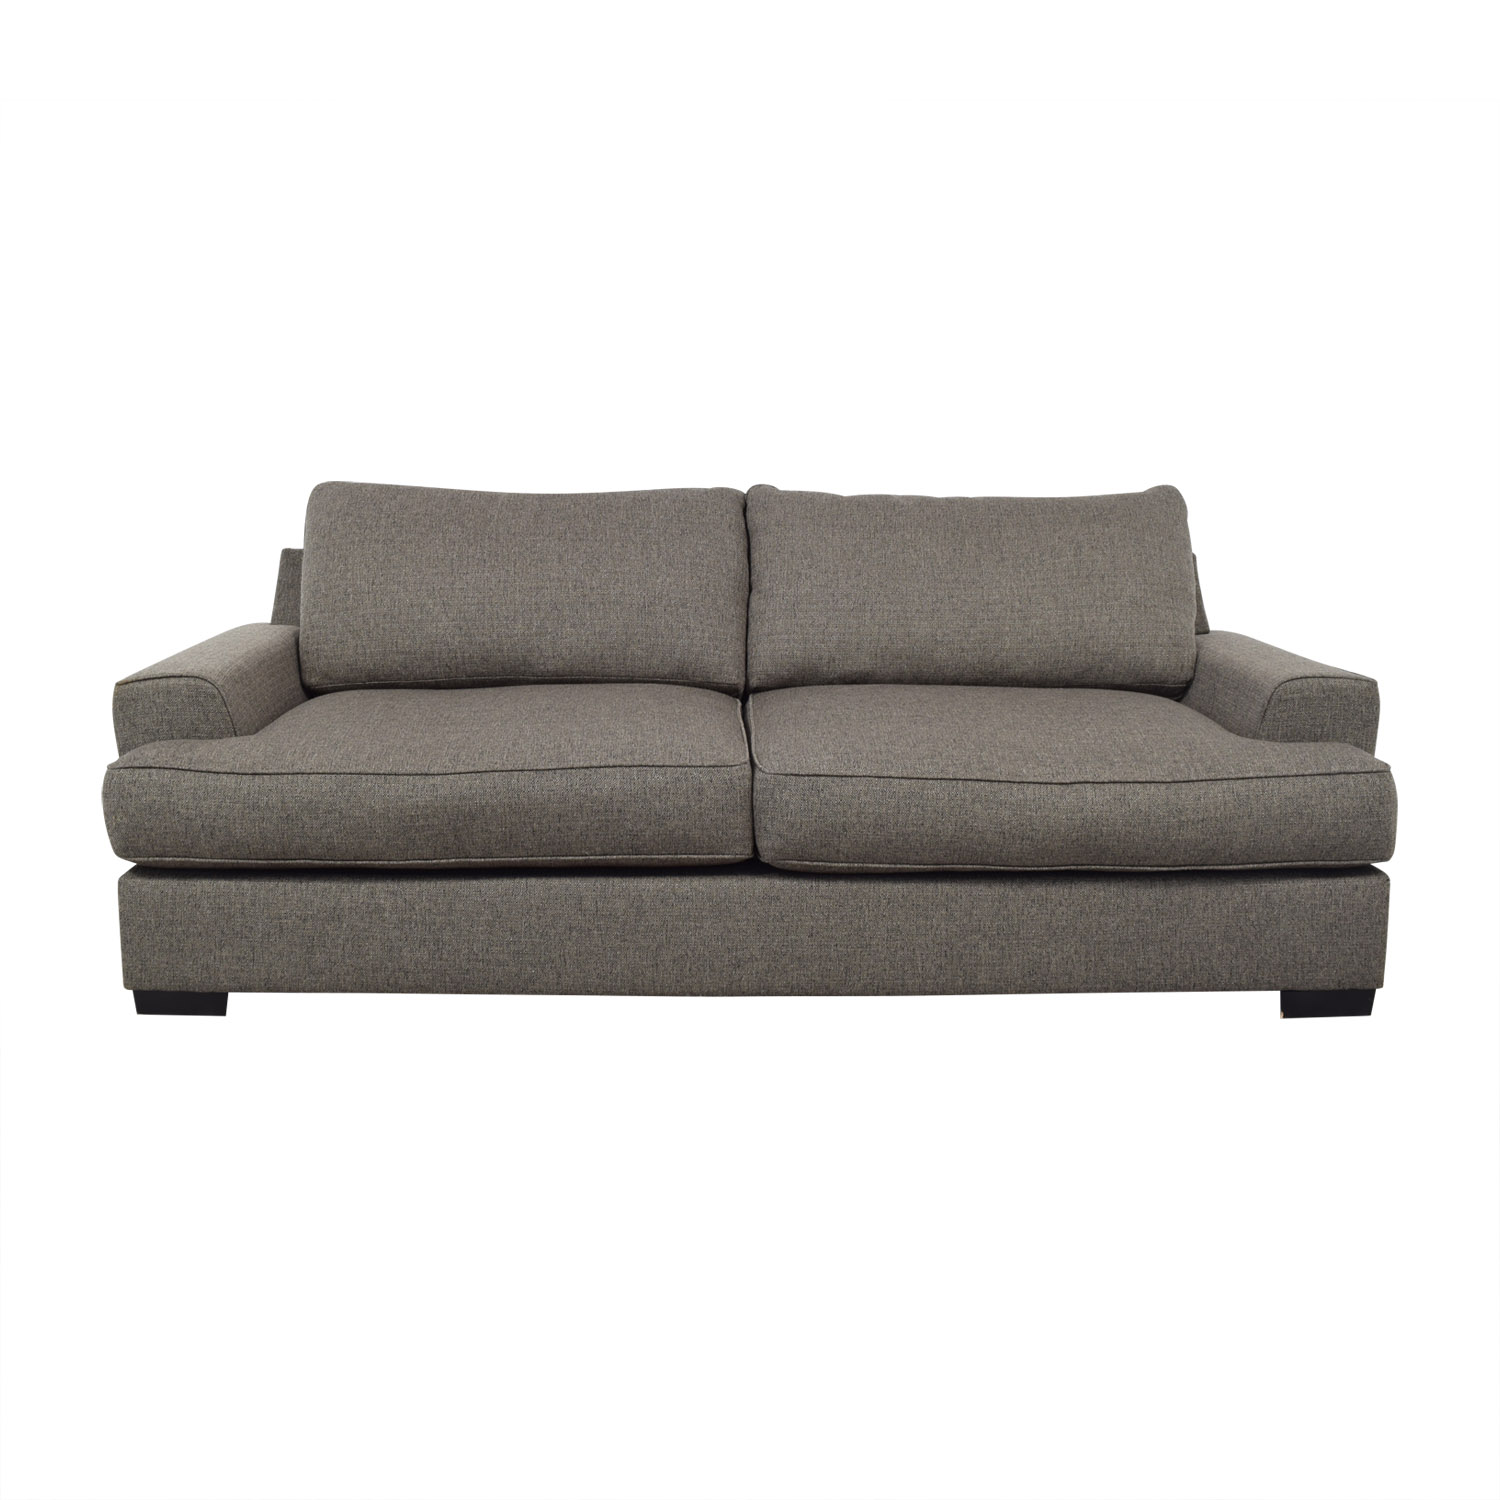 Macy's Macy's Ainsley Sofa coupon